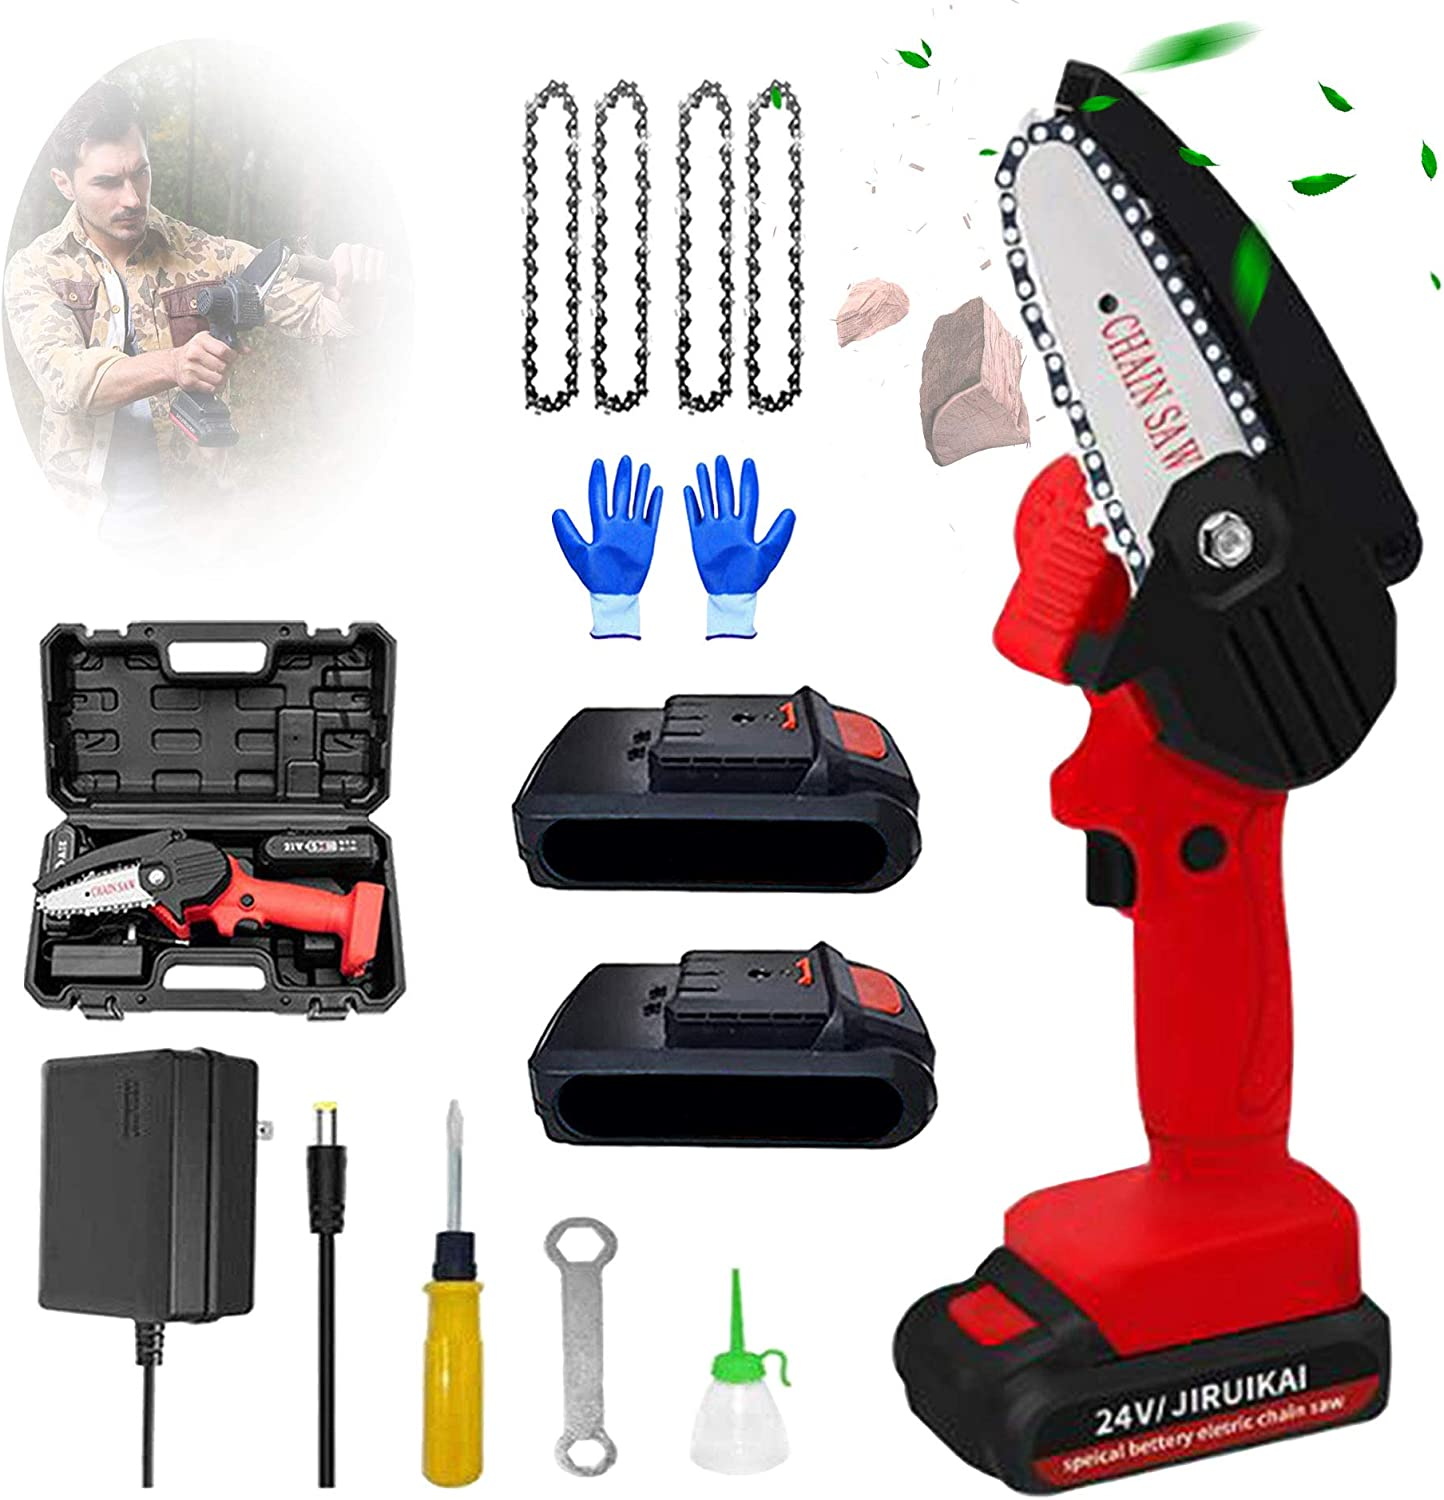 Mini Chainsaw with 2 Batteries 時間指定不可 卸売り and Handheld Saw Cordle 4 Chains